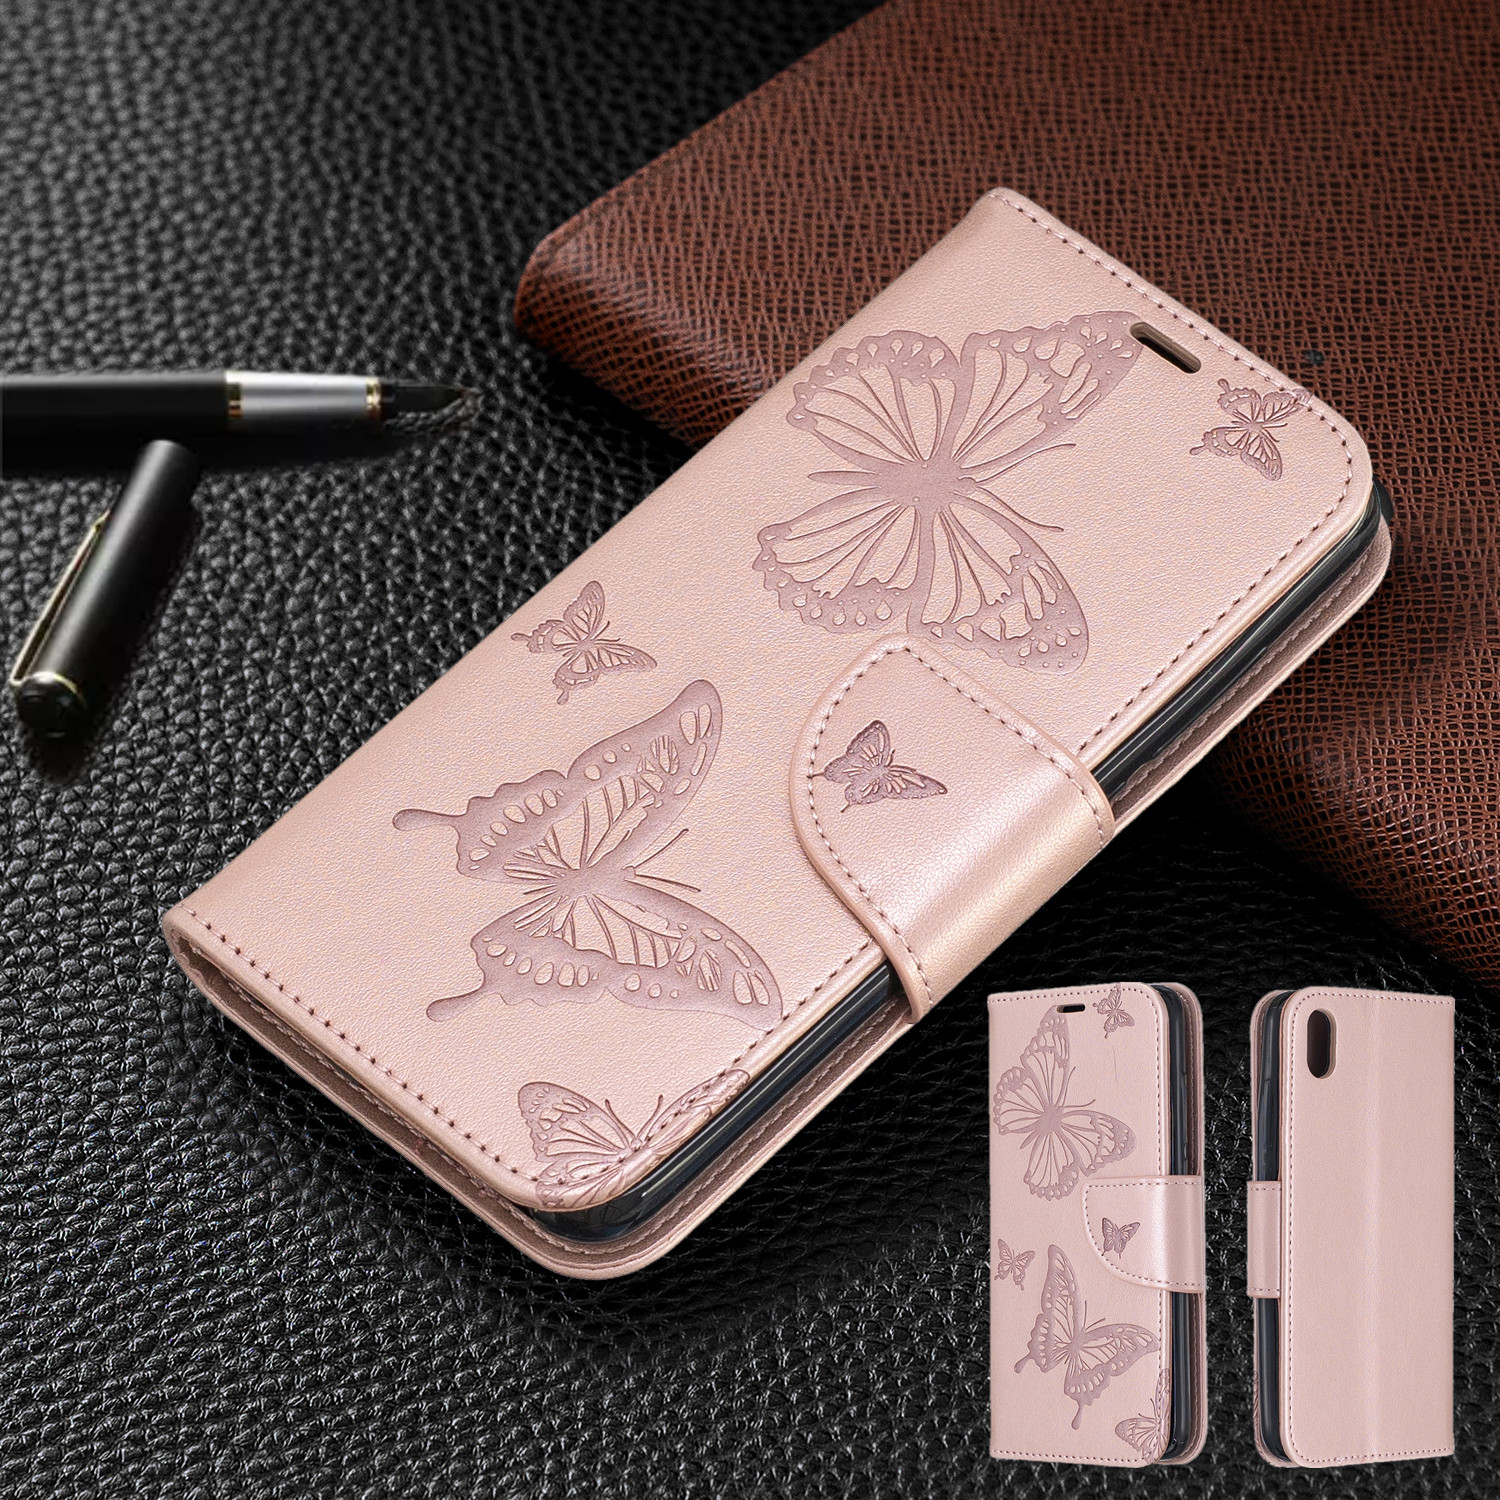 Butterfly Wallet Flip Case For Xiaomi Redmi K30 K20 8A 7A Note 8T 8 7 6 6A 6 Pro Case For Xiaomi Mi A2 Lite Leather Cover